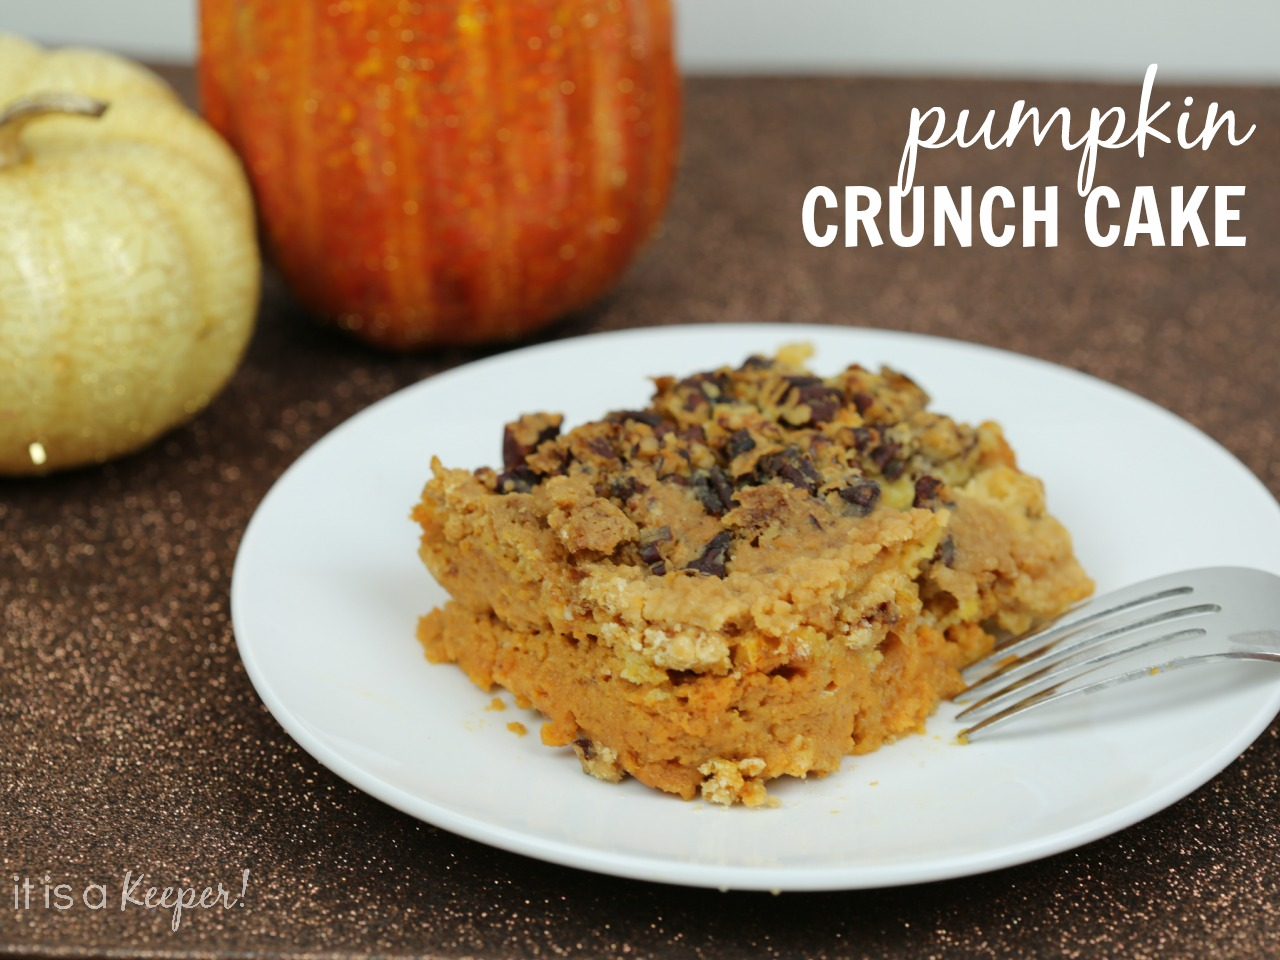 This Pumpkin Crunch Cake is a super easy dessert recipe that is perfect for fall.qThis Pumpkin Crunch Cake is a super easy dessert recipe that is perfect for fall.